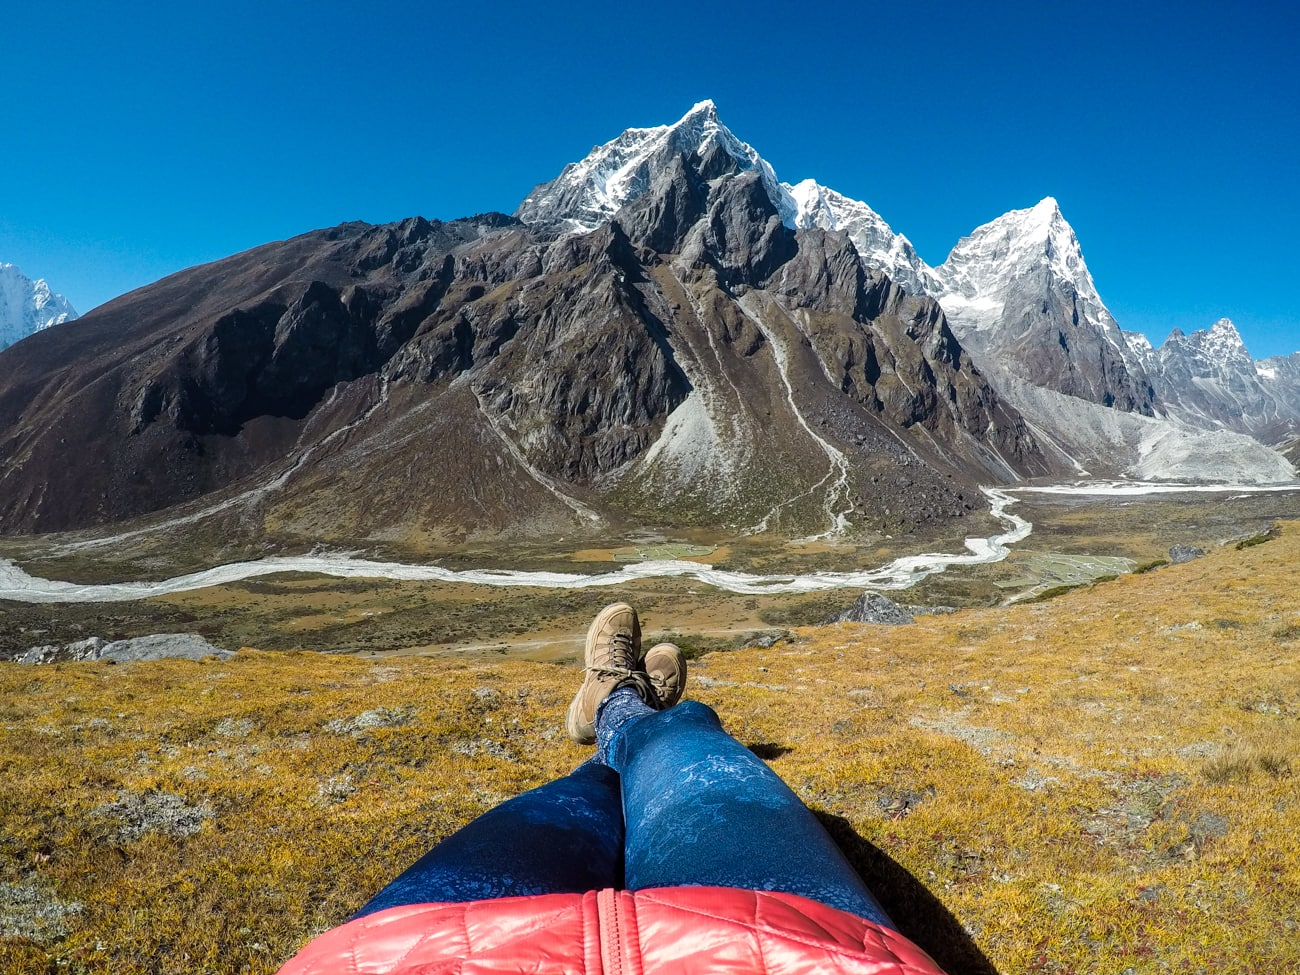 Everest base camp photos - Tabouche and Cholatse peaks while trekking from Dingboche to Lobuche